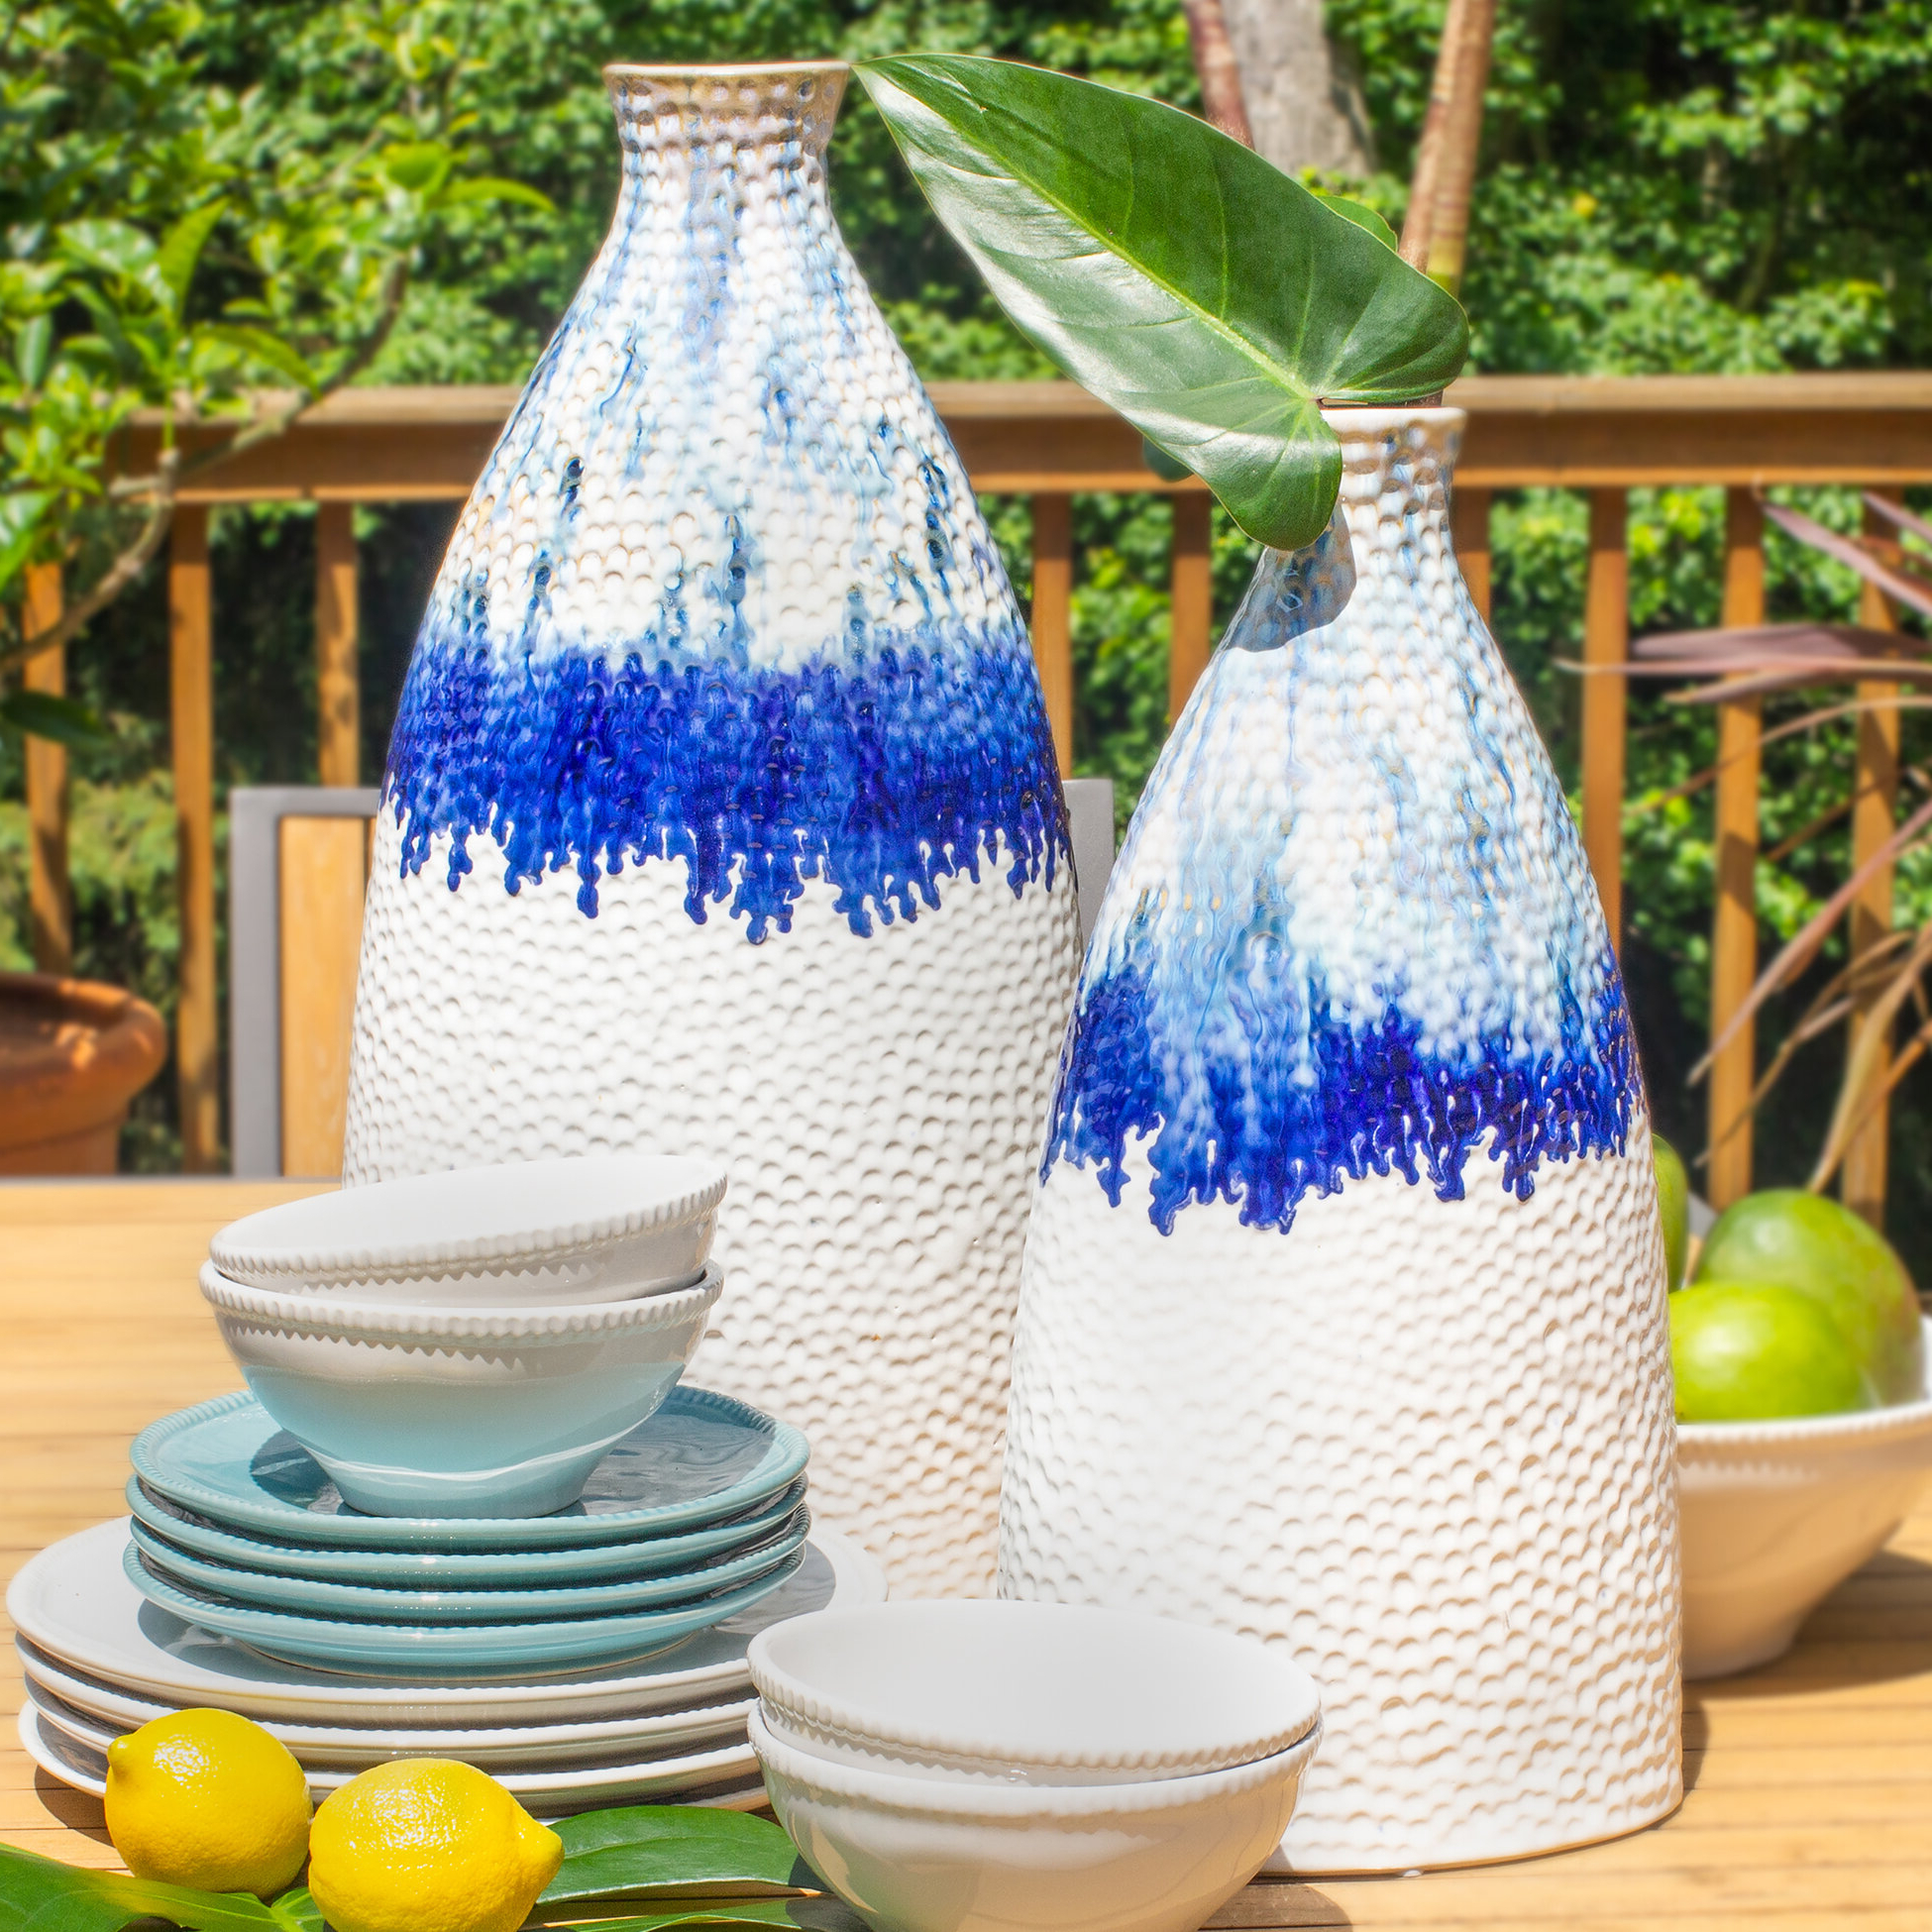 Wurster Blue/white Tasble Vase For Newest Wurster Ceramic Drip Garden Stools (View 9 of 30)